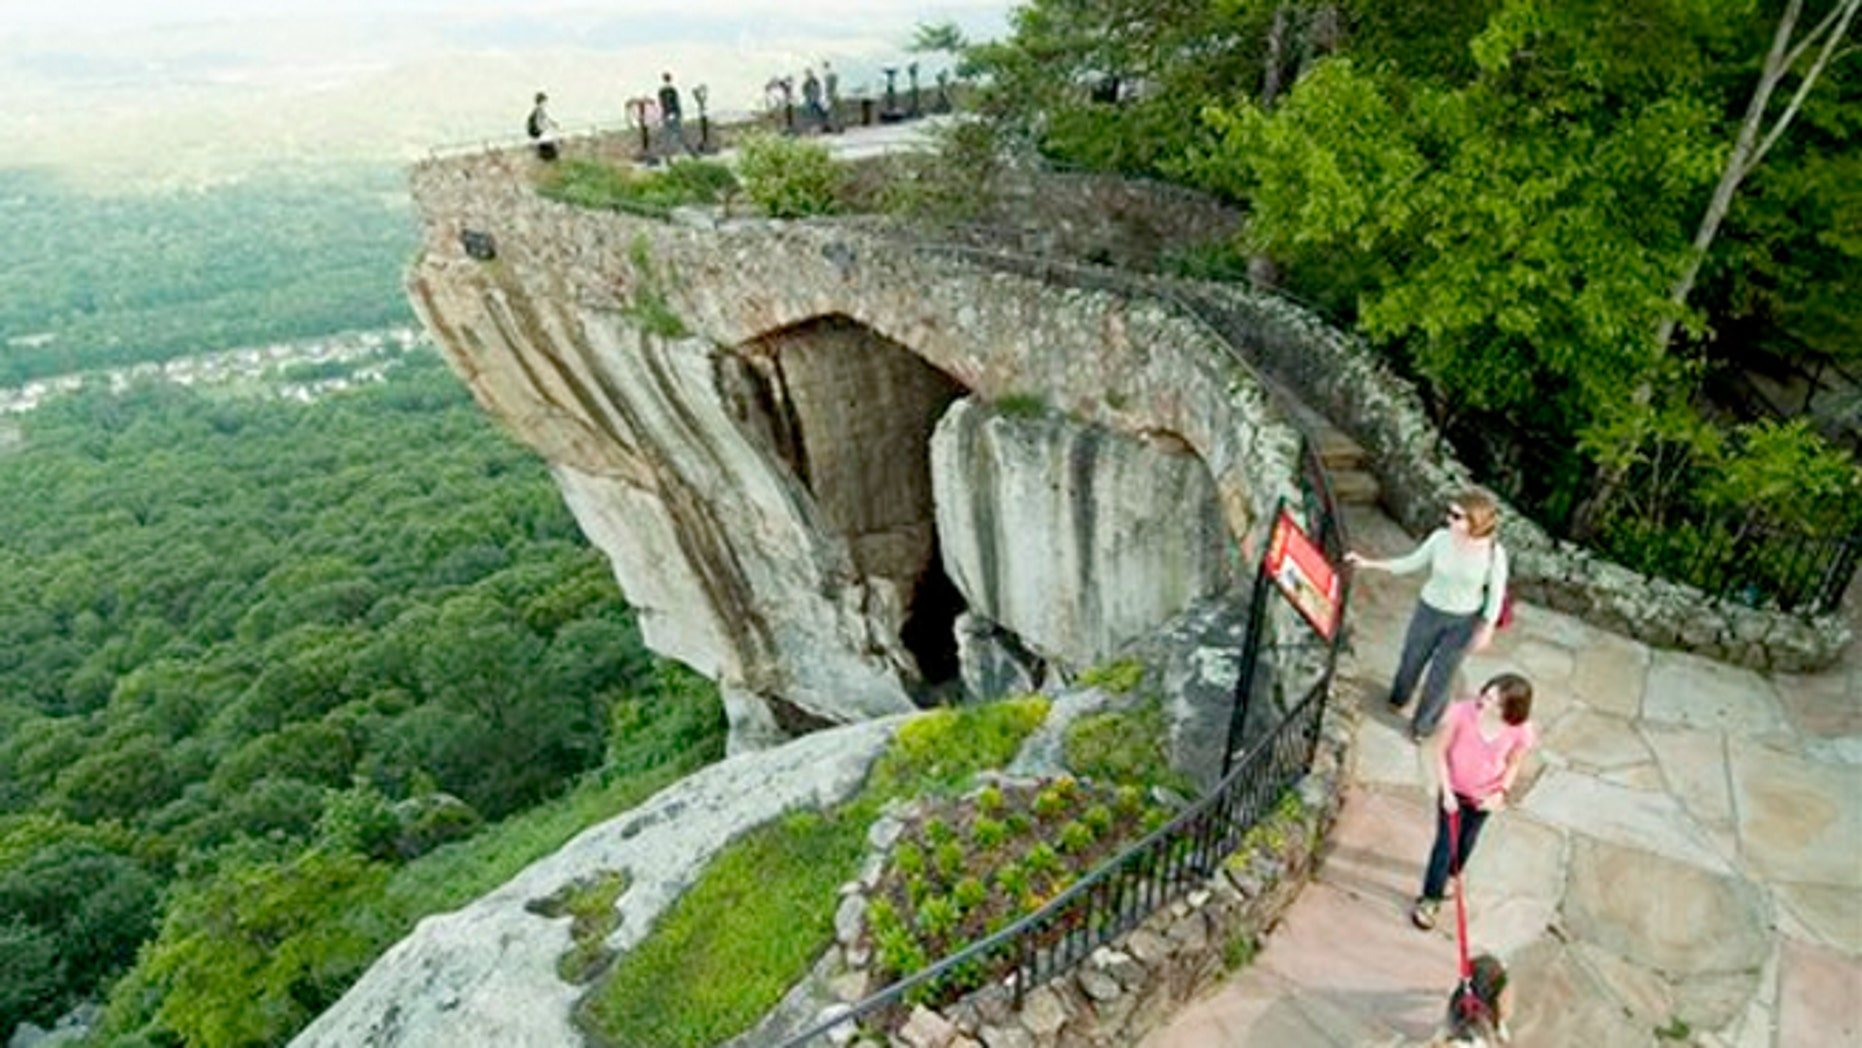 Lover's Leap, one of the well-known scenic spots along the Enchanted Trail.